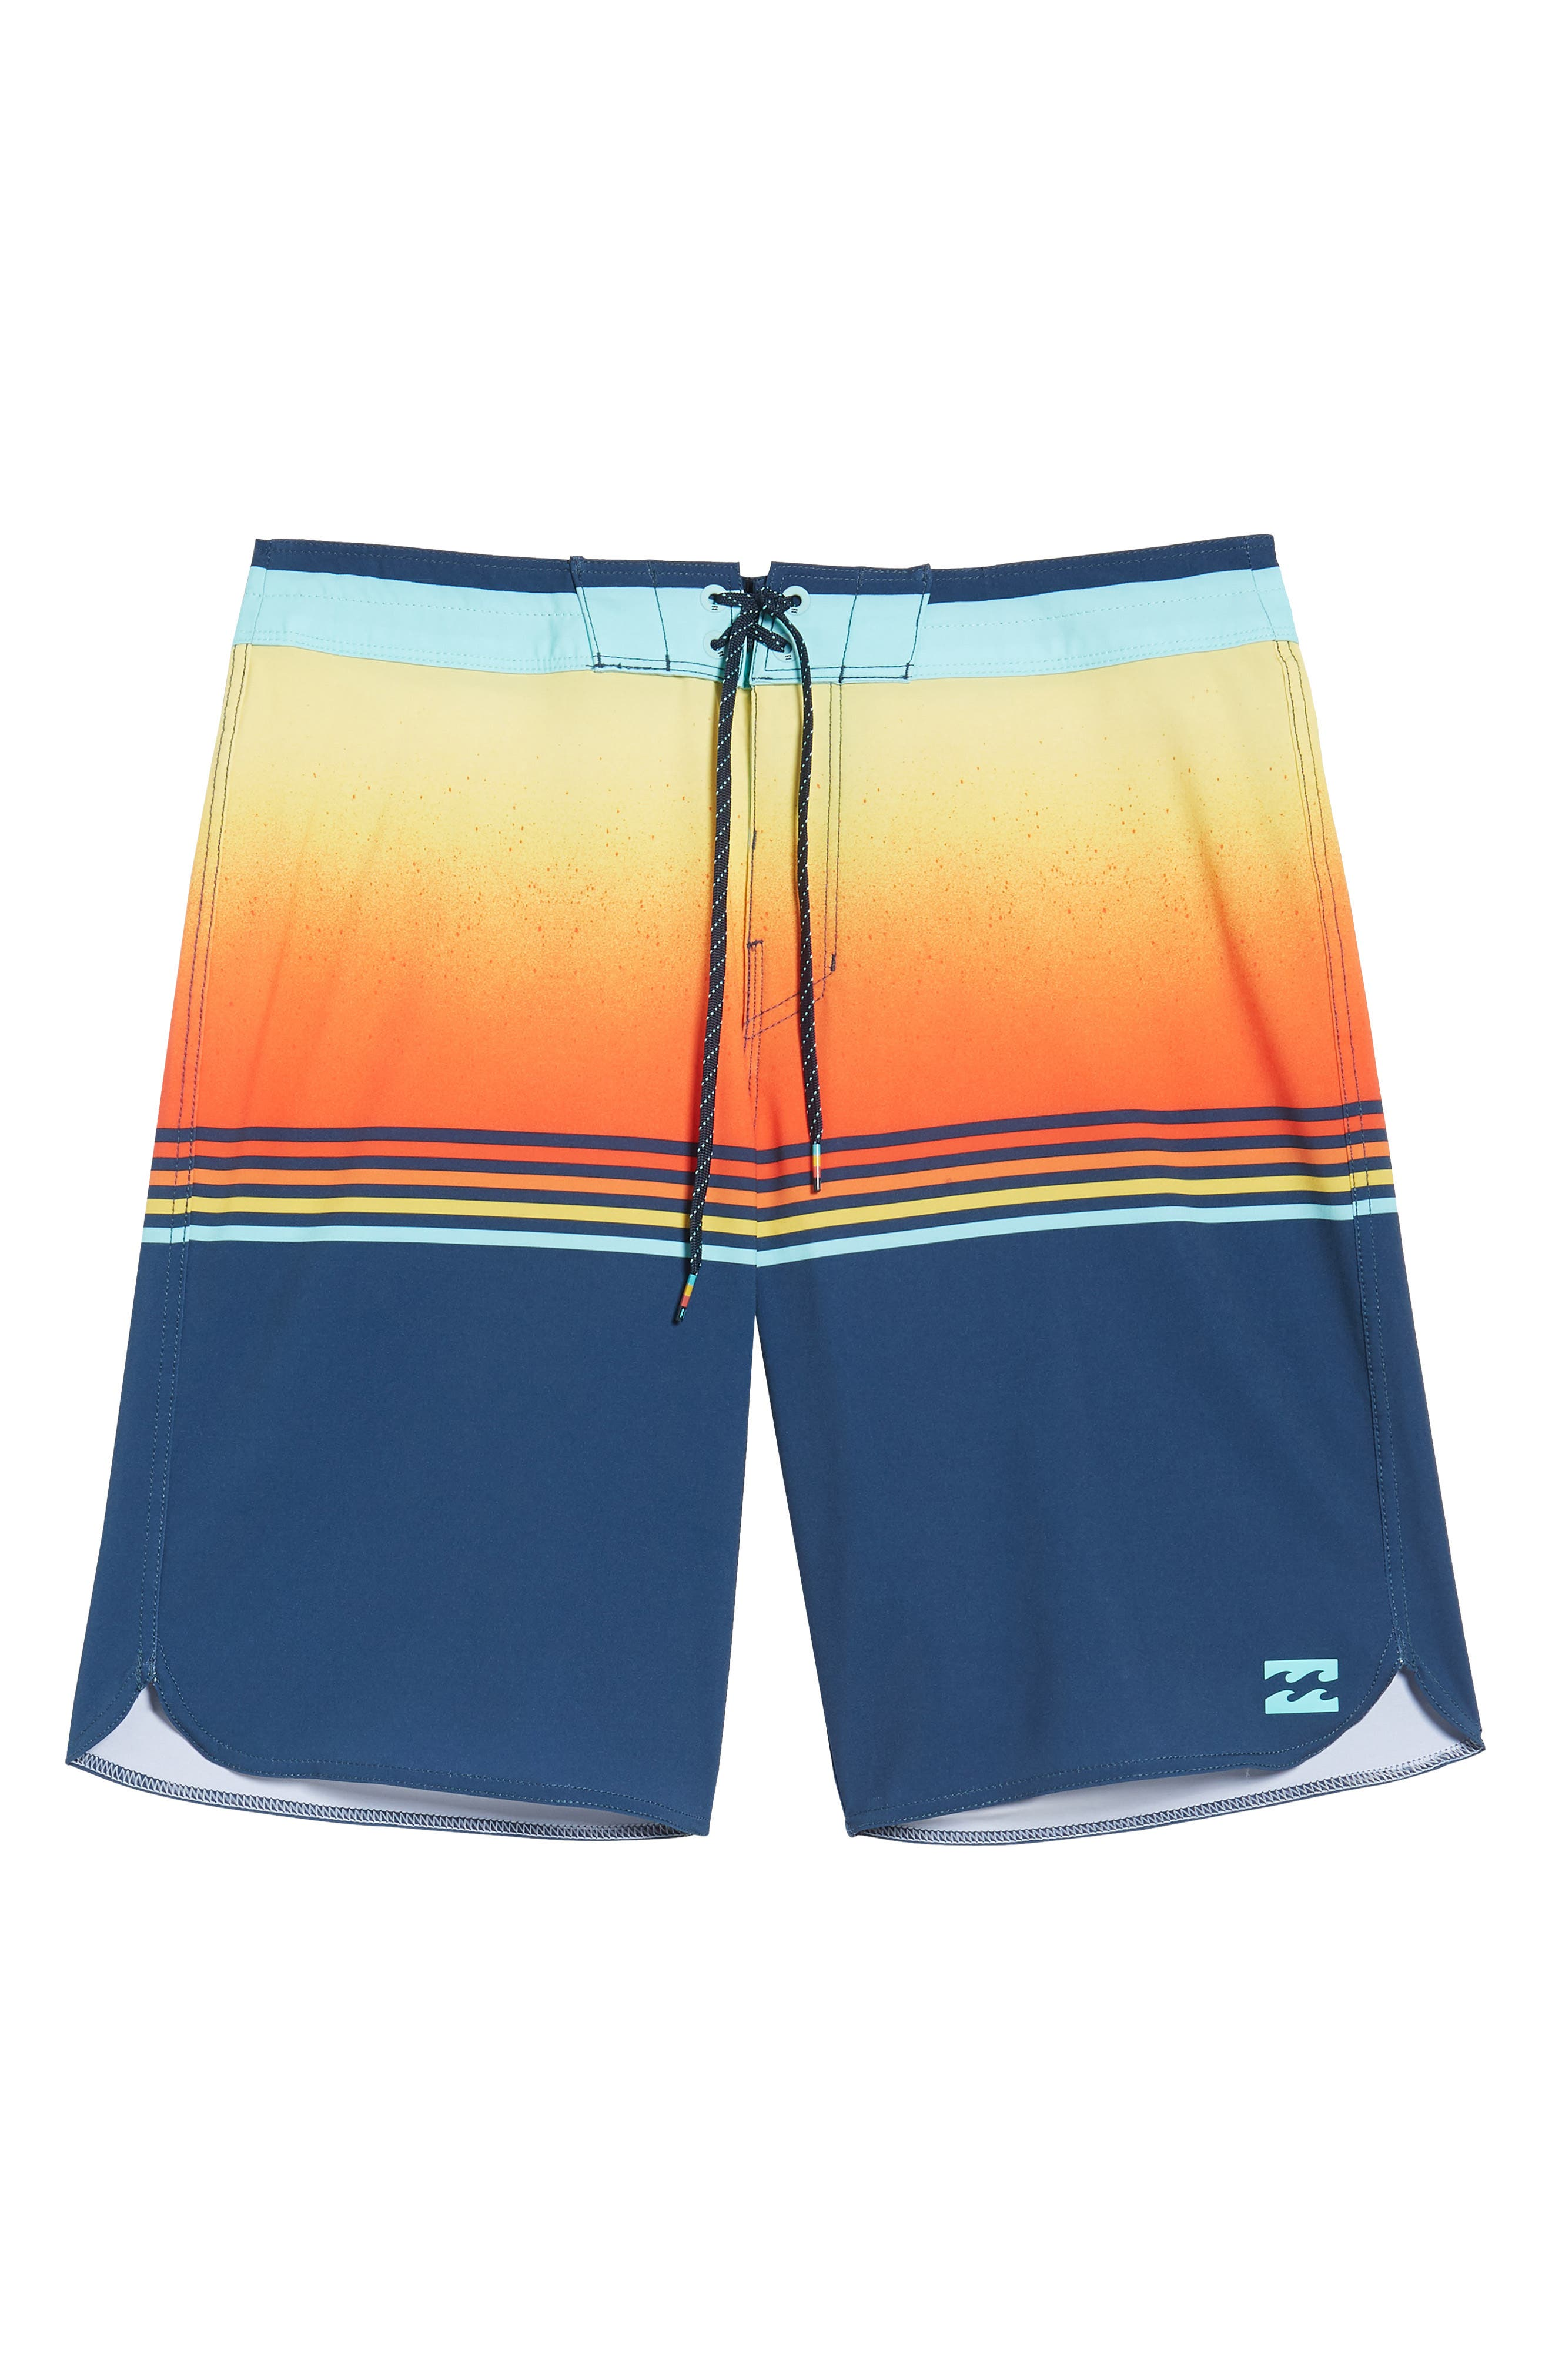 Fifty50 X Board Shorts,                             Alternate thumbnail 6, color,